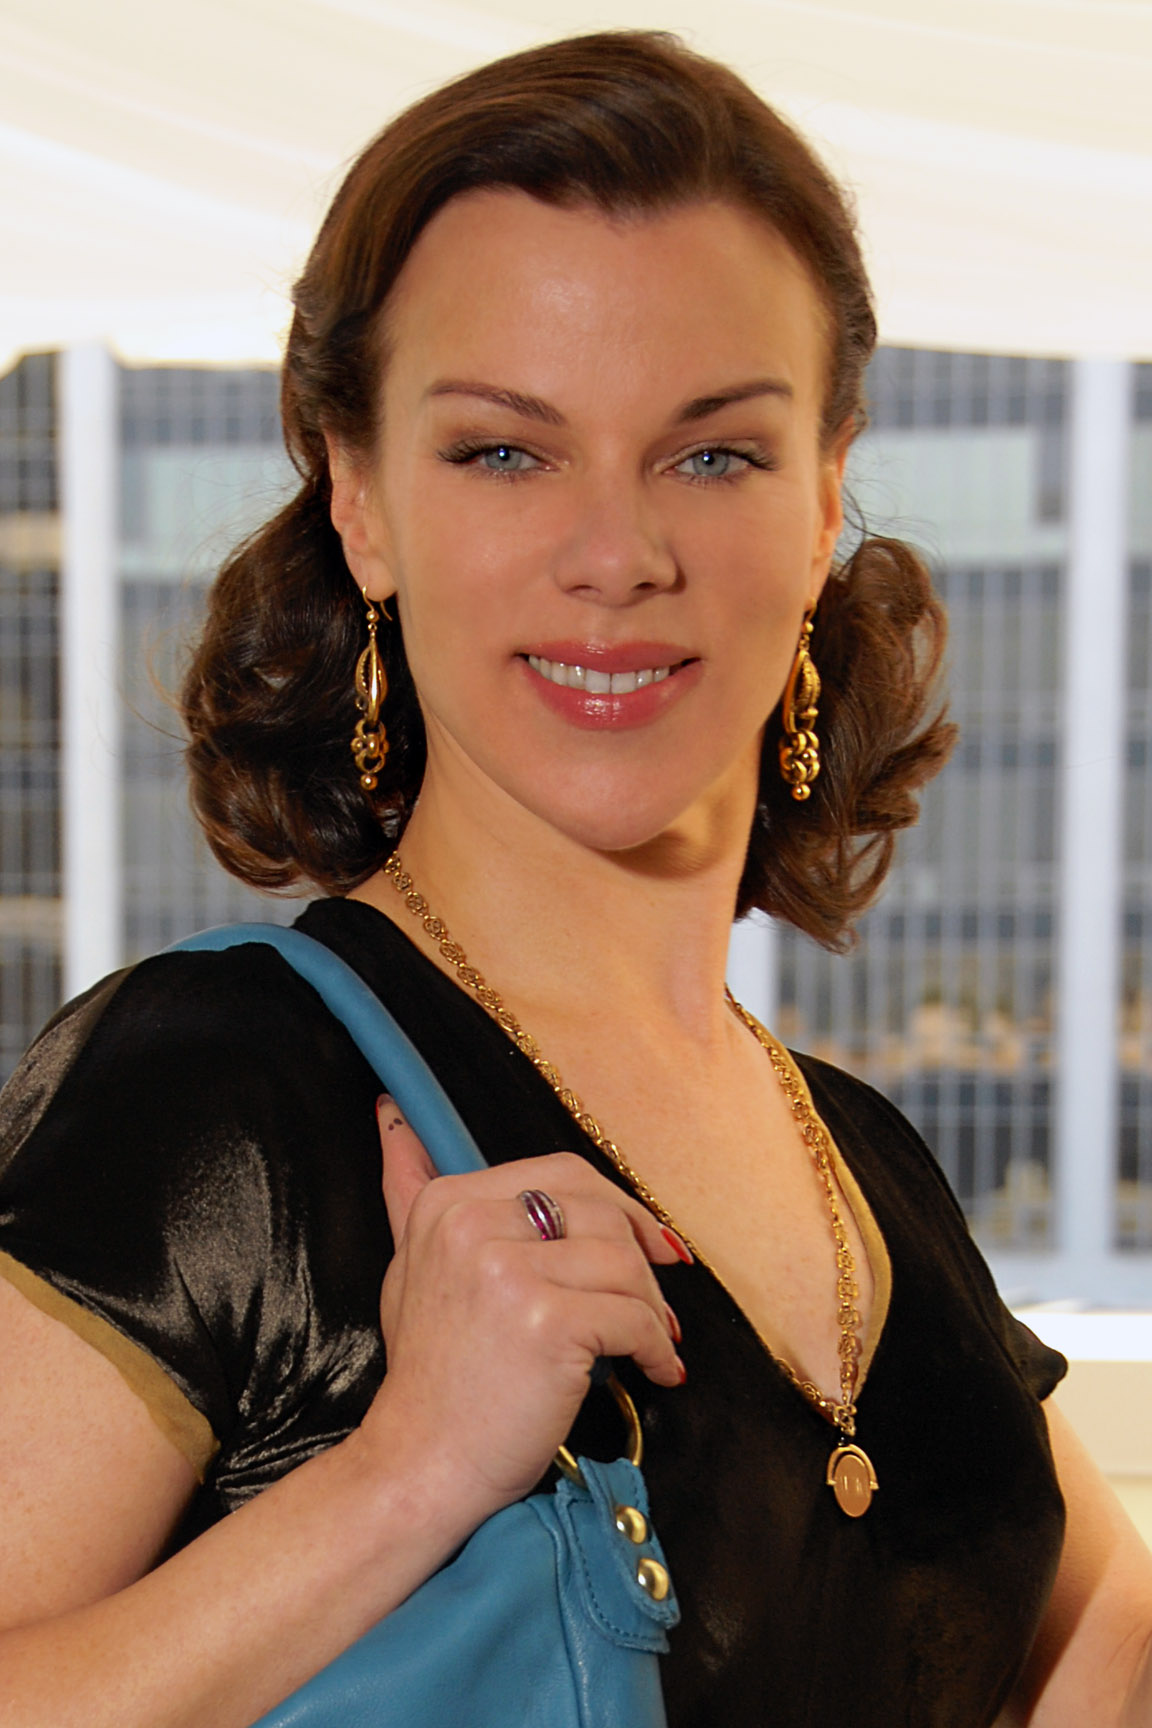 http://upload.wikimedia.org/wikipedia/commons/f/f7/Debi_Mazar_2009.jpg